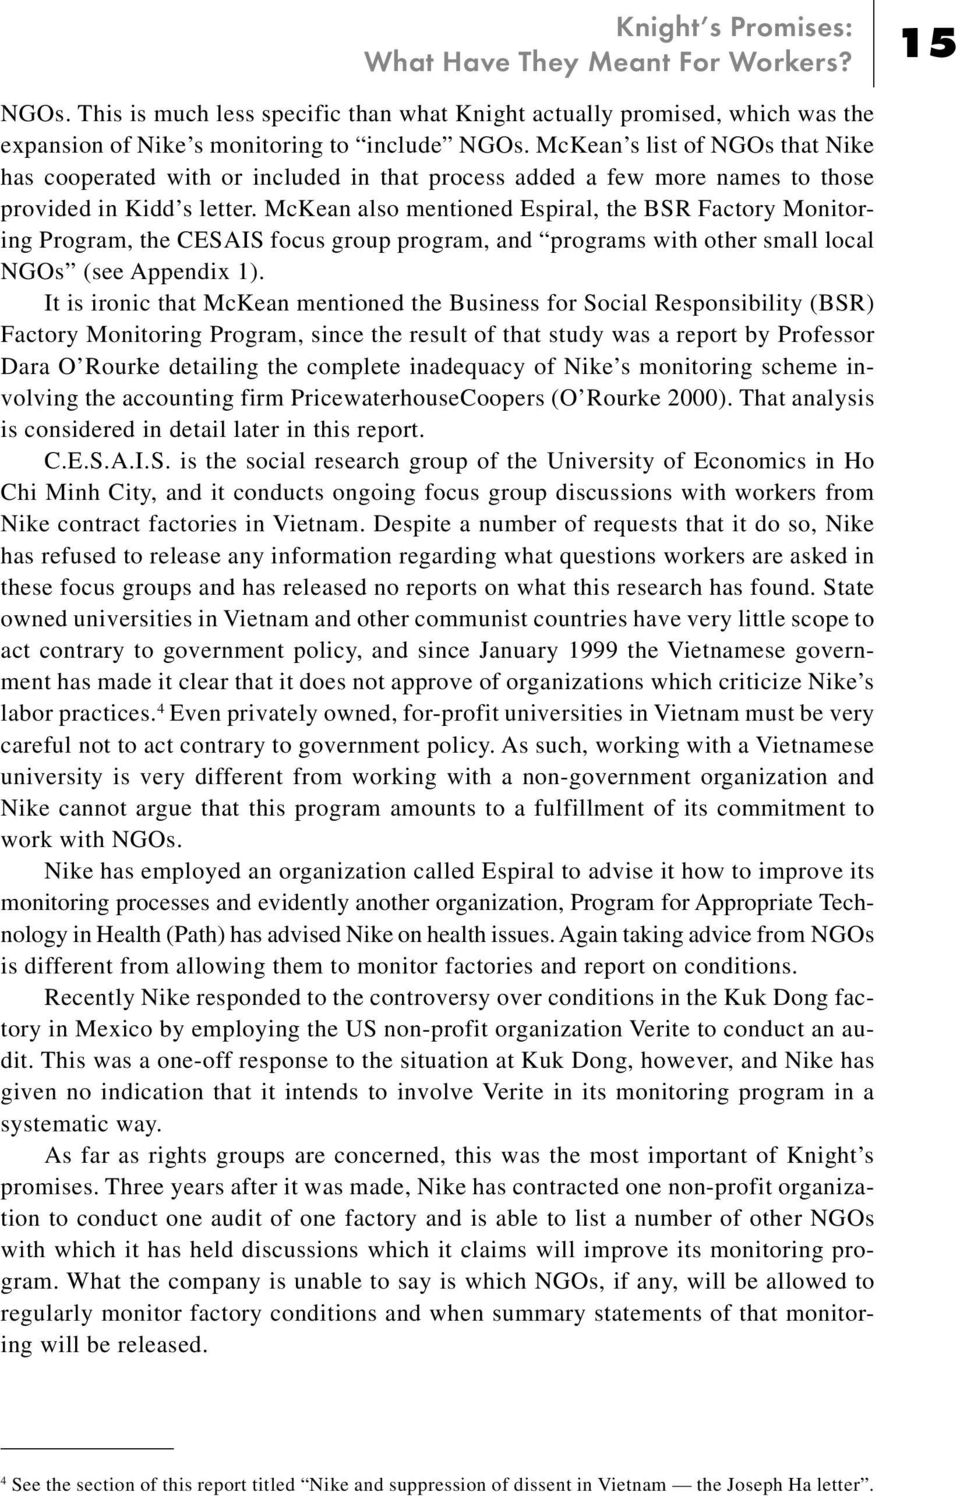 McKean also mentioned Espiral, the BSR Factory Monitoring Program, the CESAIS focus group program, and programs with other small local NGOs (see Appendix 1).